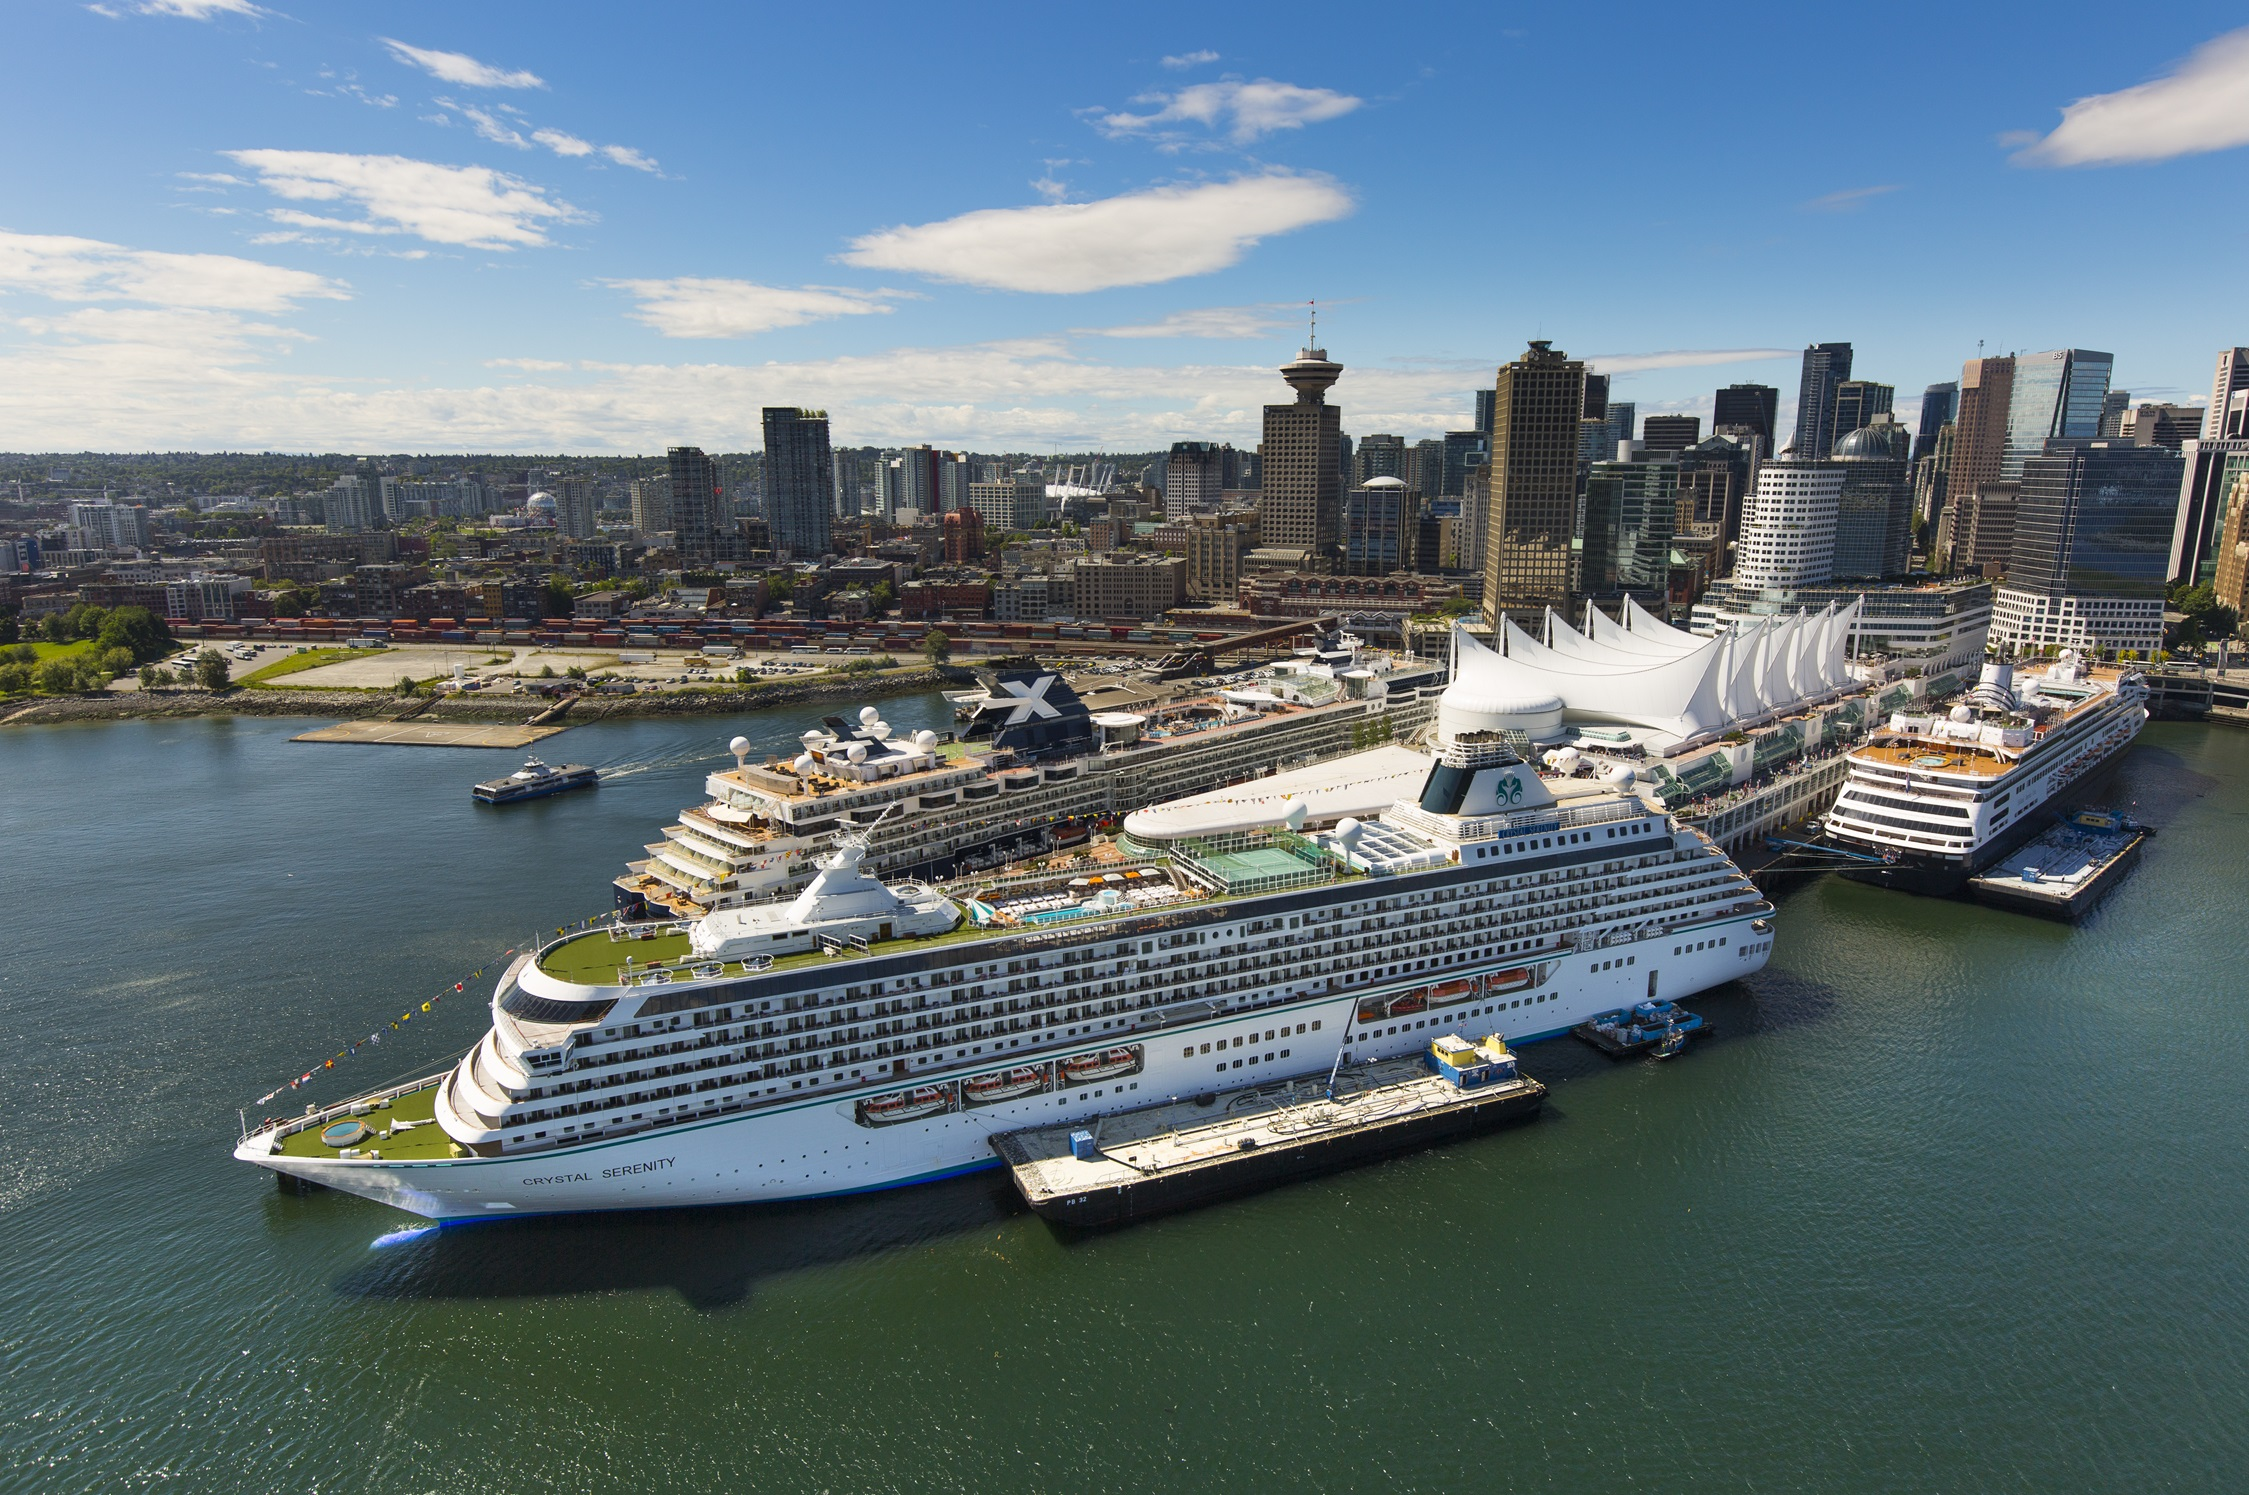 Gaming Fun and Unforgettable Cruising